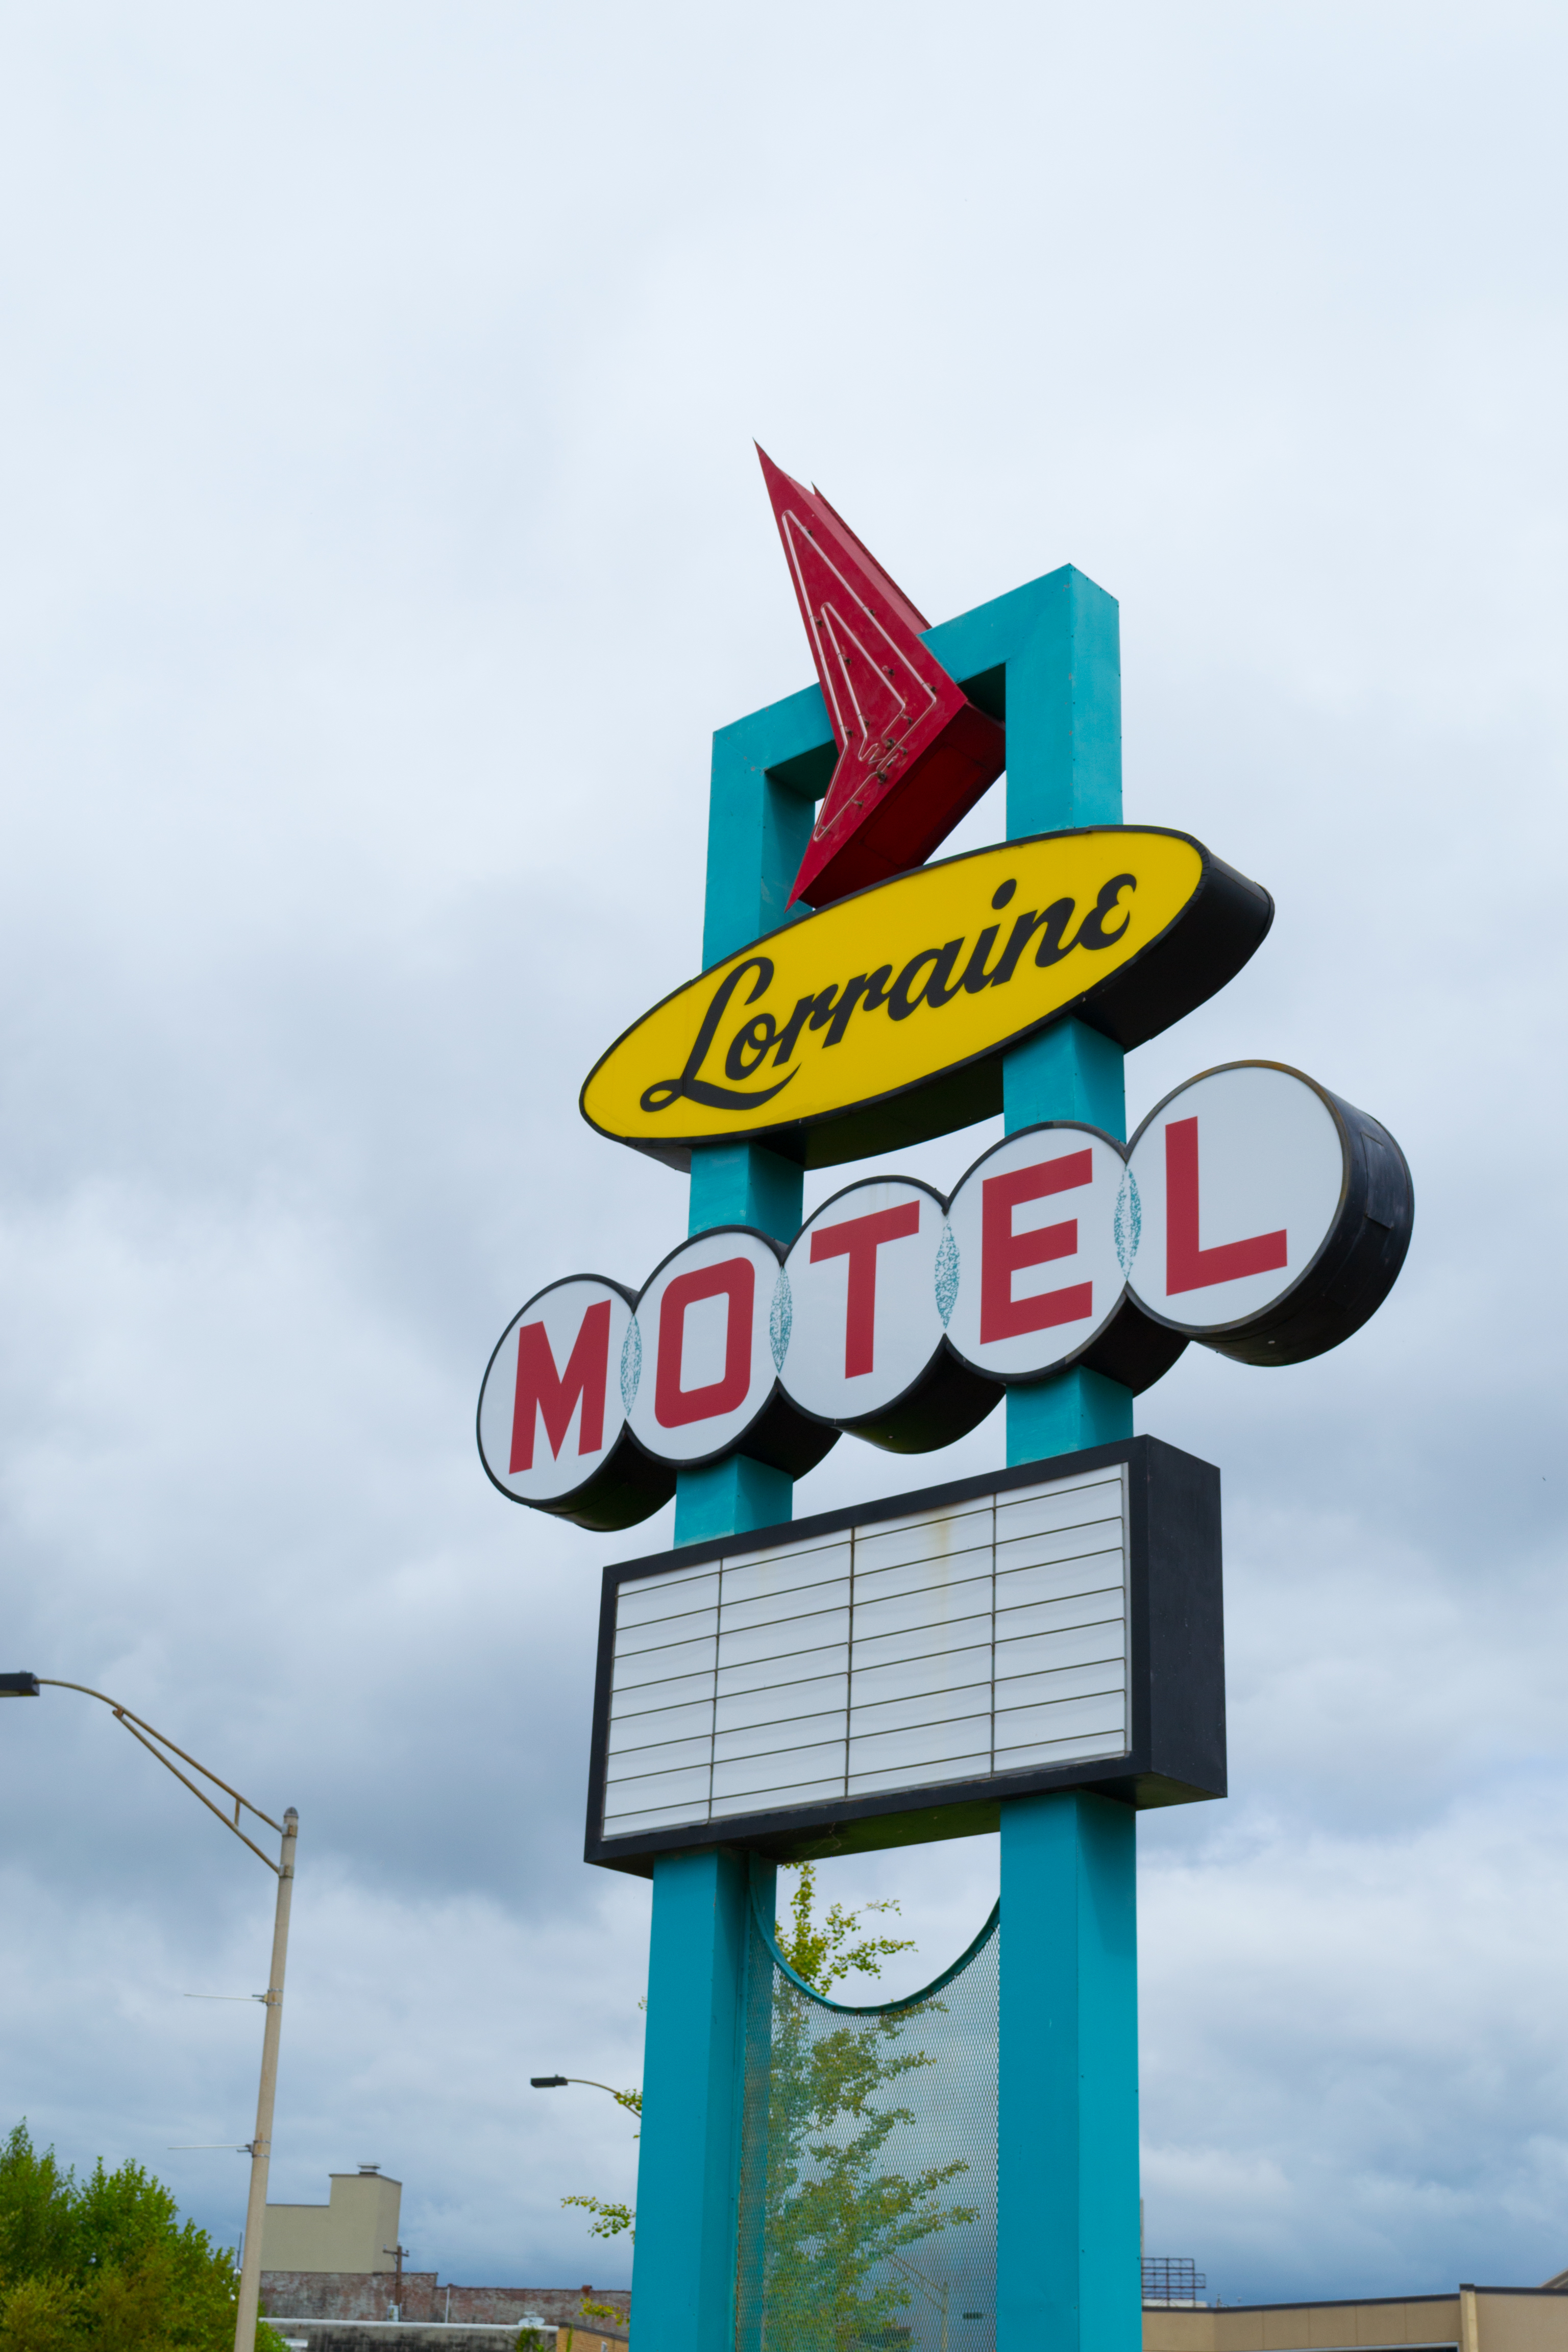 The Lorraine Motel is where Martin Luther King was assassinated, now it hosts the museum of human rights. SHUTTERSTOCK/ Ruben Martinez Barricarte